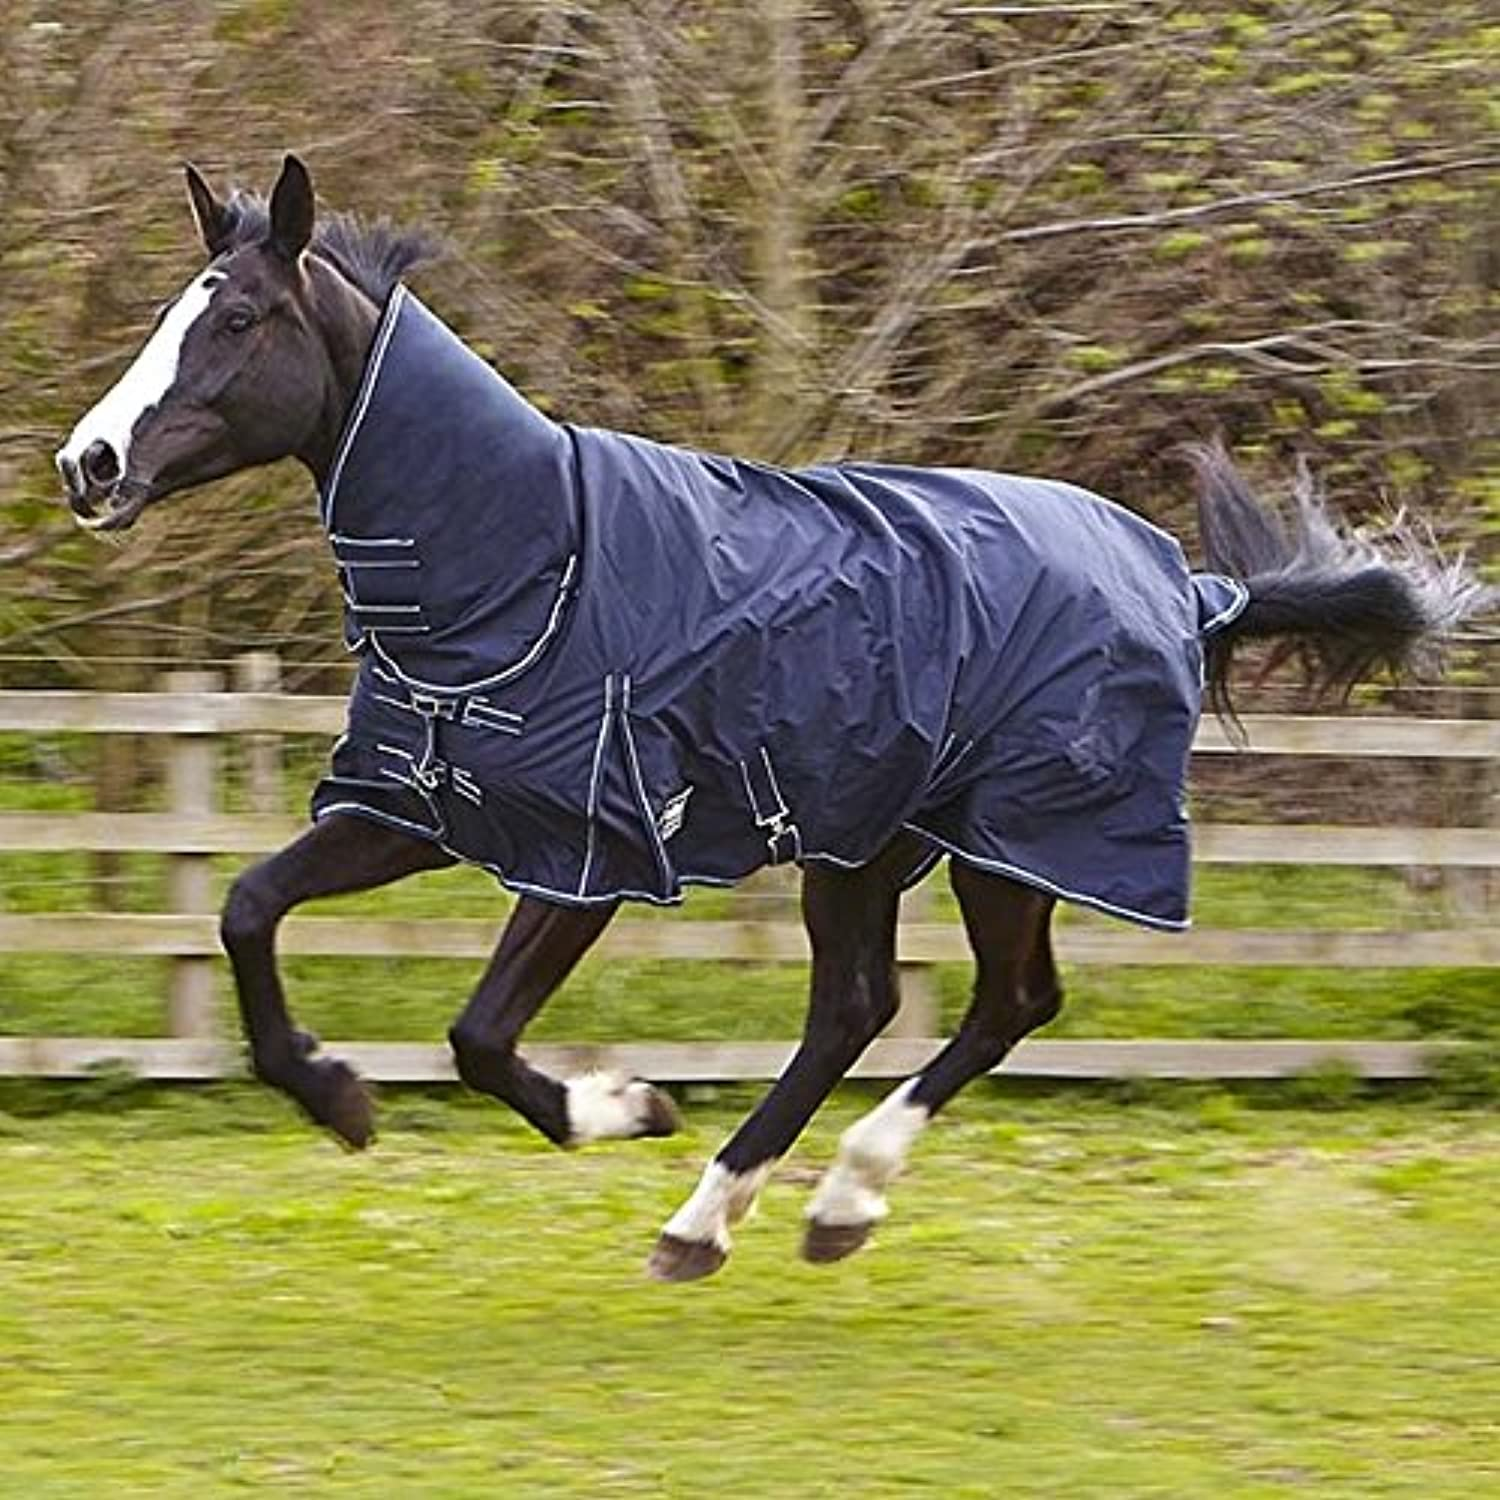 Elico PENNINE 200G COMBO TURNOUT RUG MEDIUM WEIGHT HORSE PONY (5FT 3 )